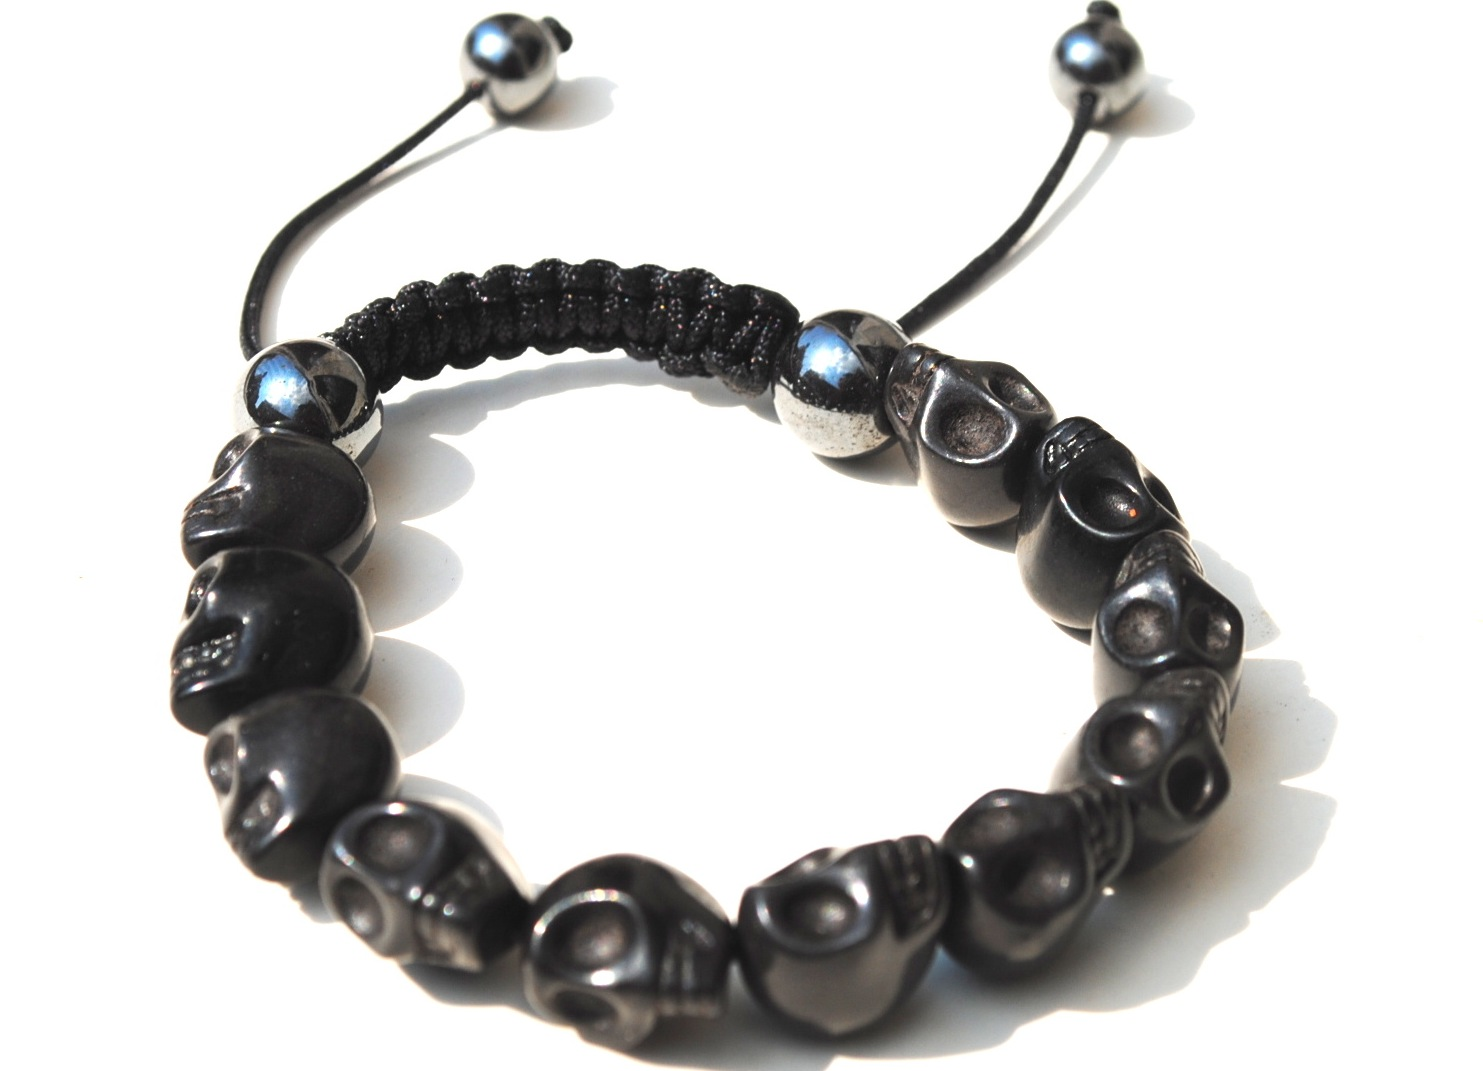 where to buy custom made bracelets for men in maryland